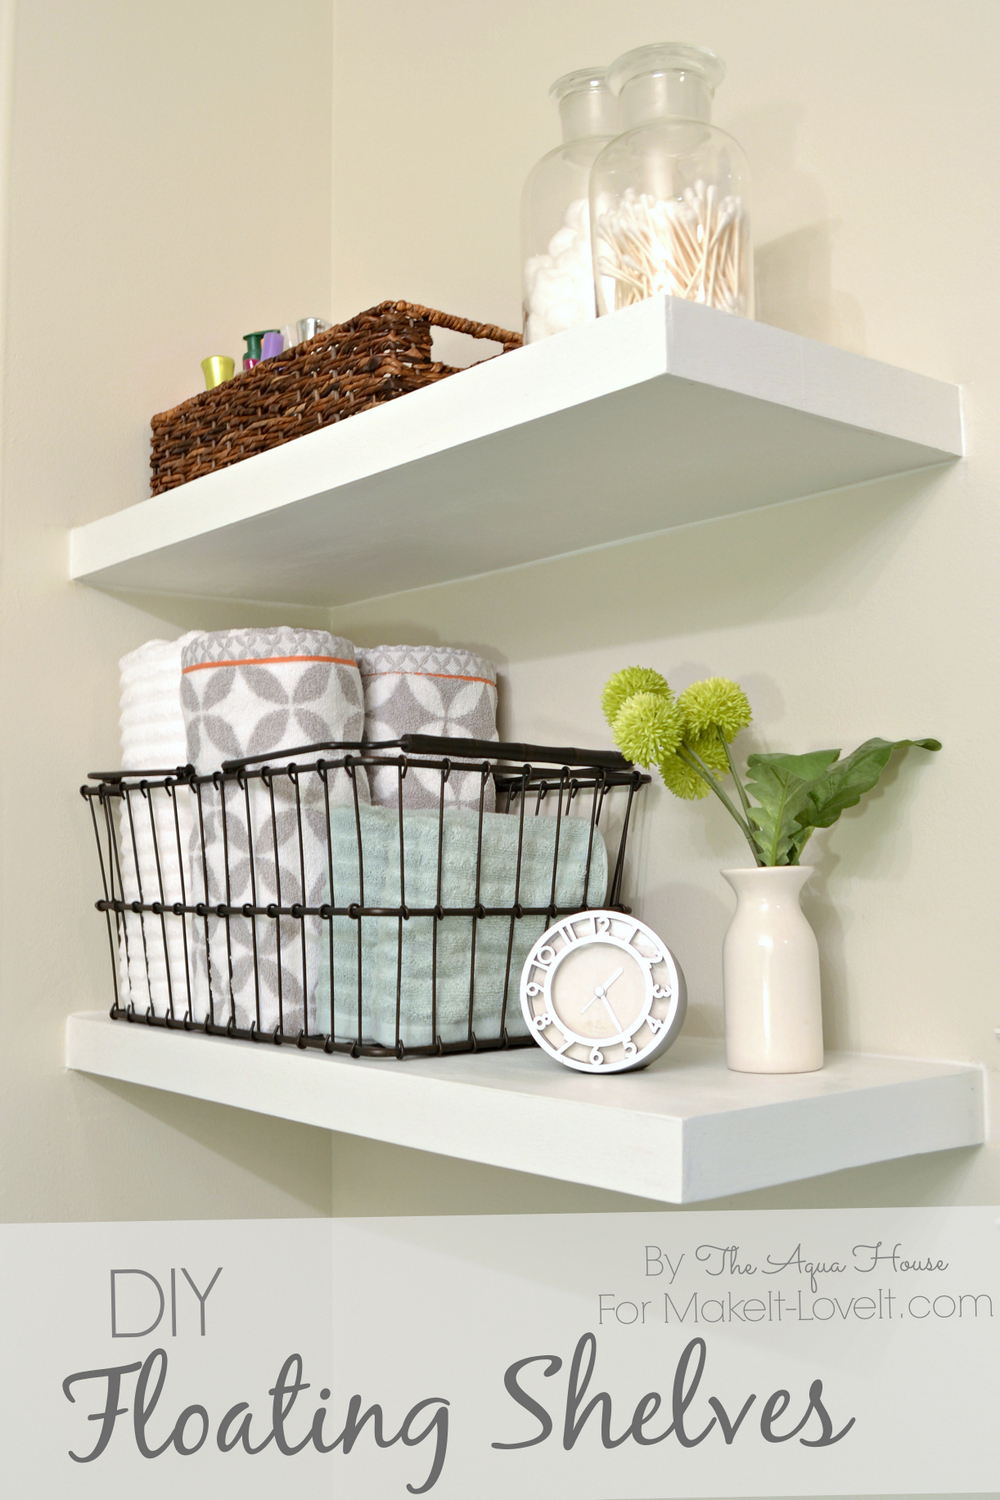 diy floating shelves great storage solution make and love floatings title hang shelf without brackets inch kitchen windows over sink garage for shovels book dividers distressed